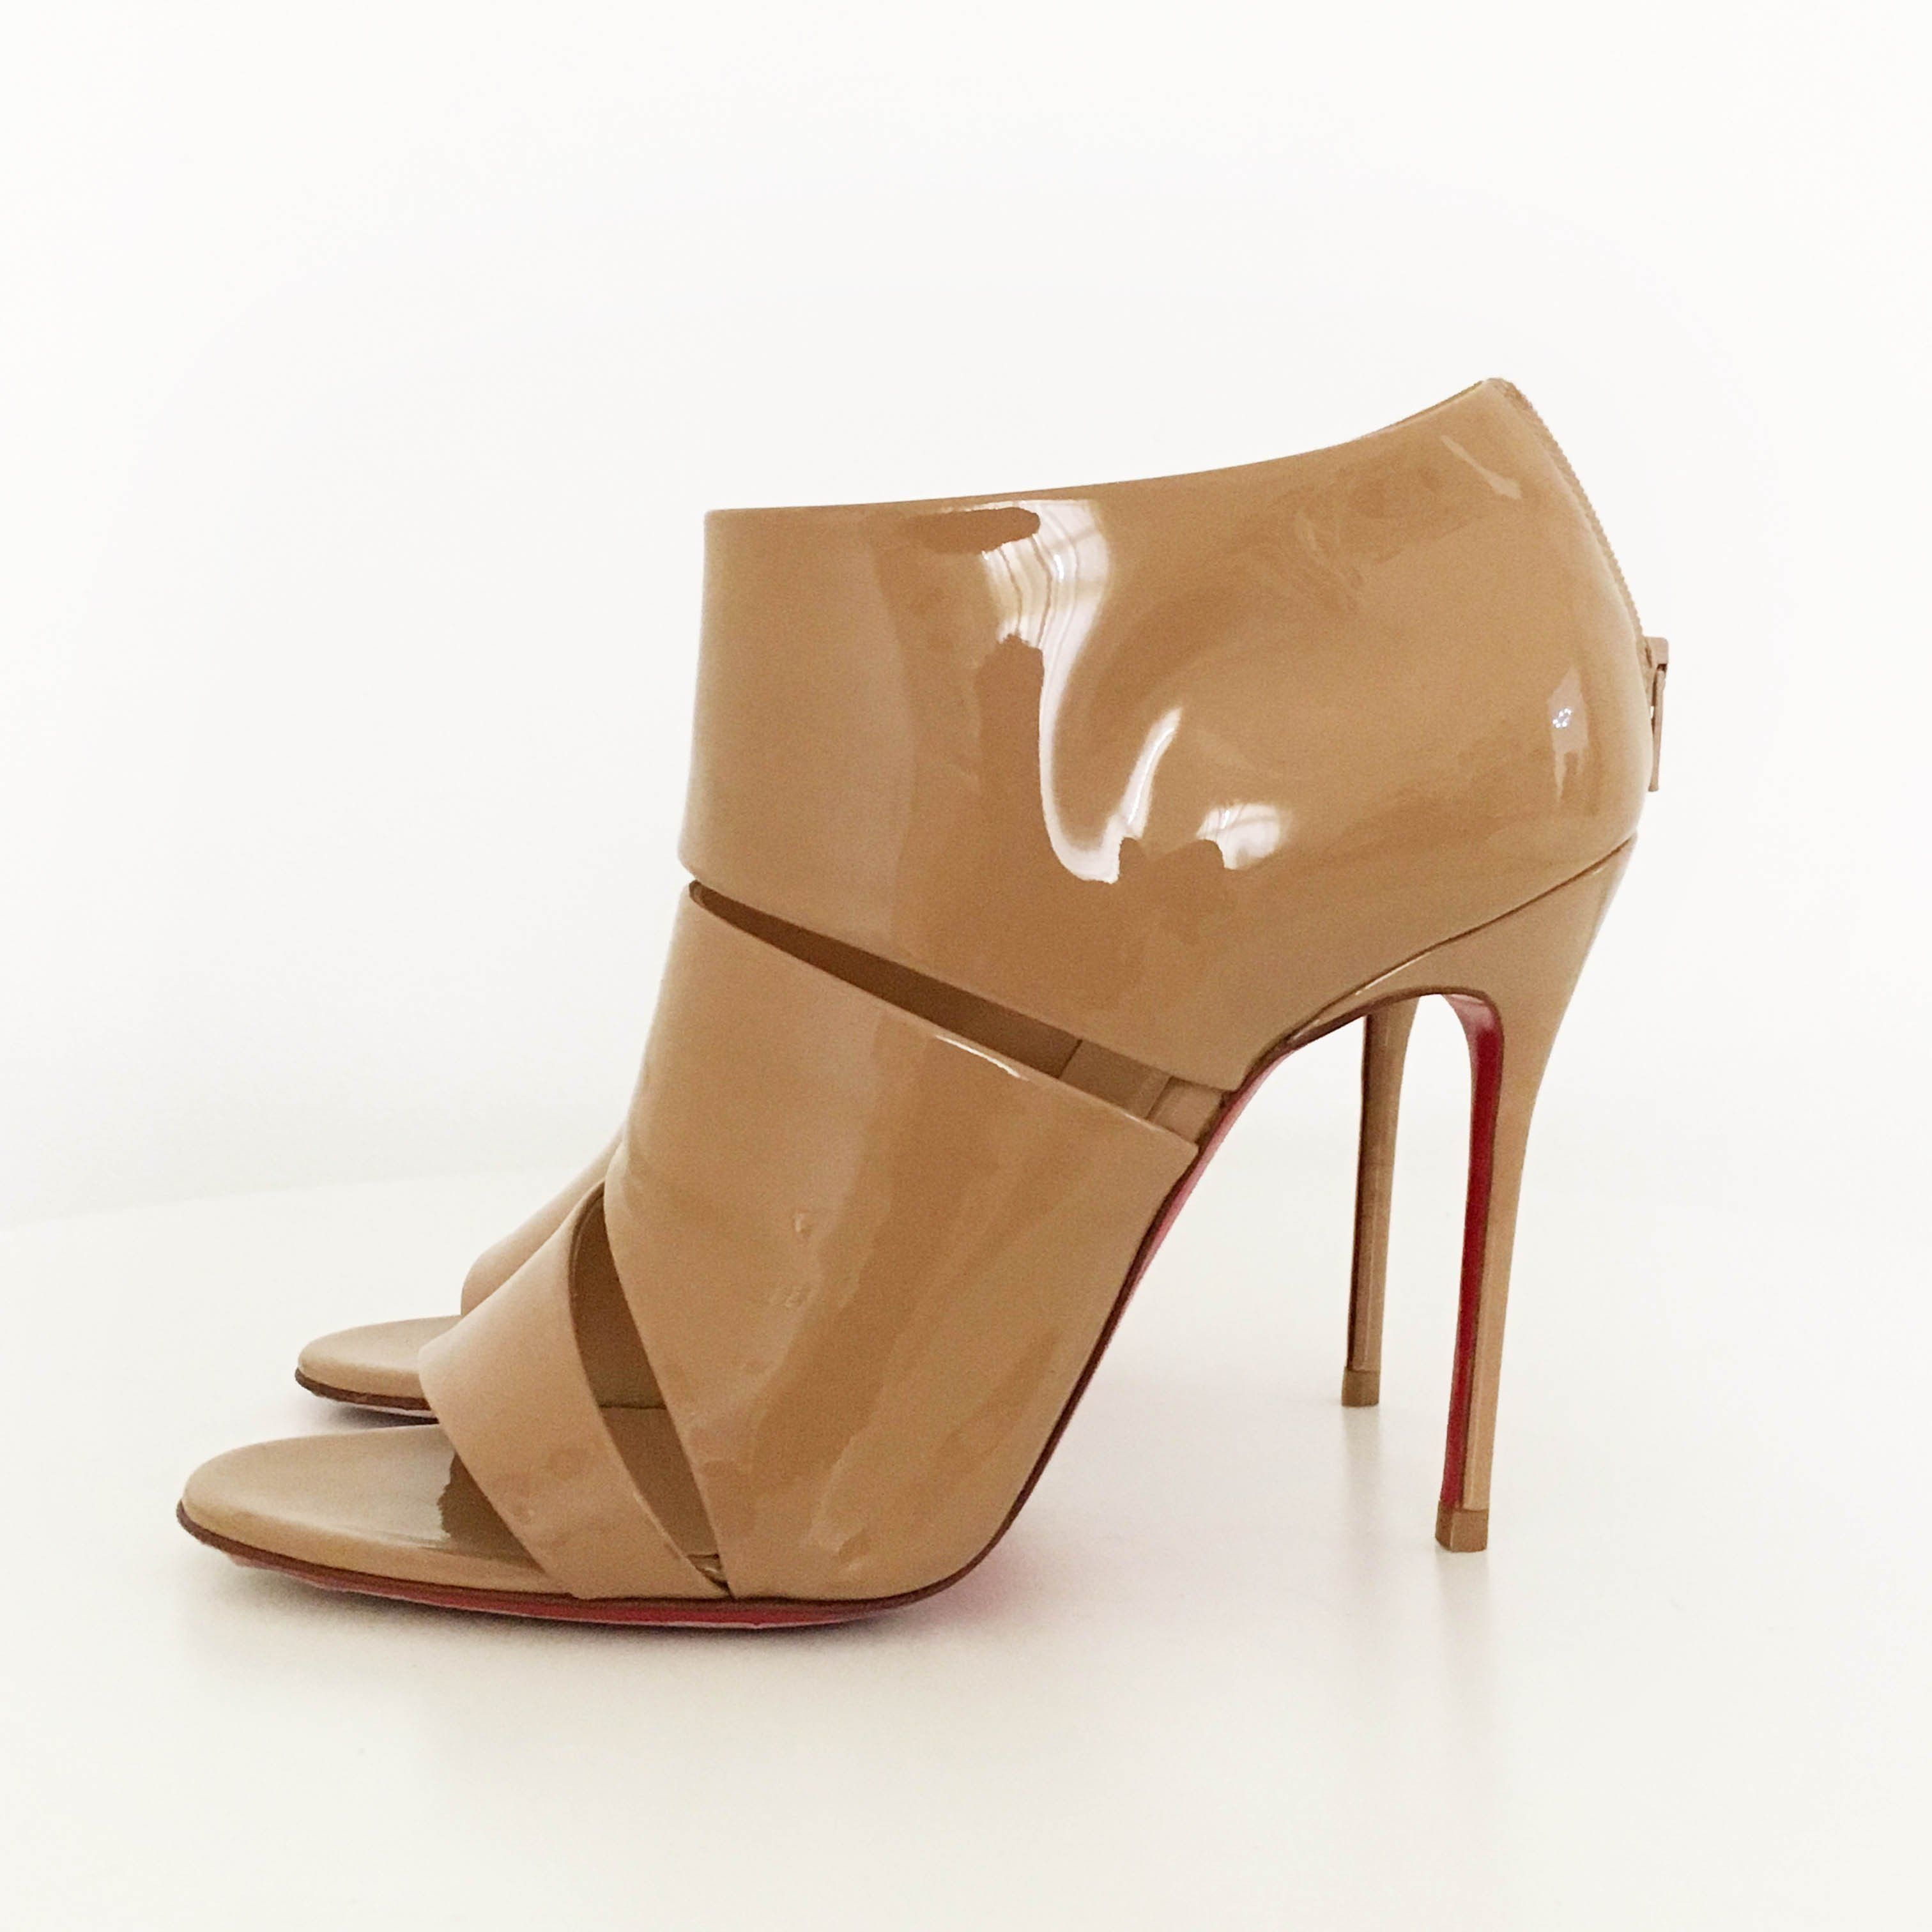 Christian Louboutin Beige Patent Leather Cut Out Sandal Heels